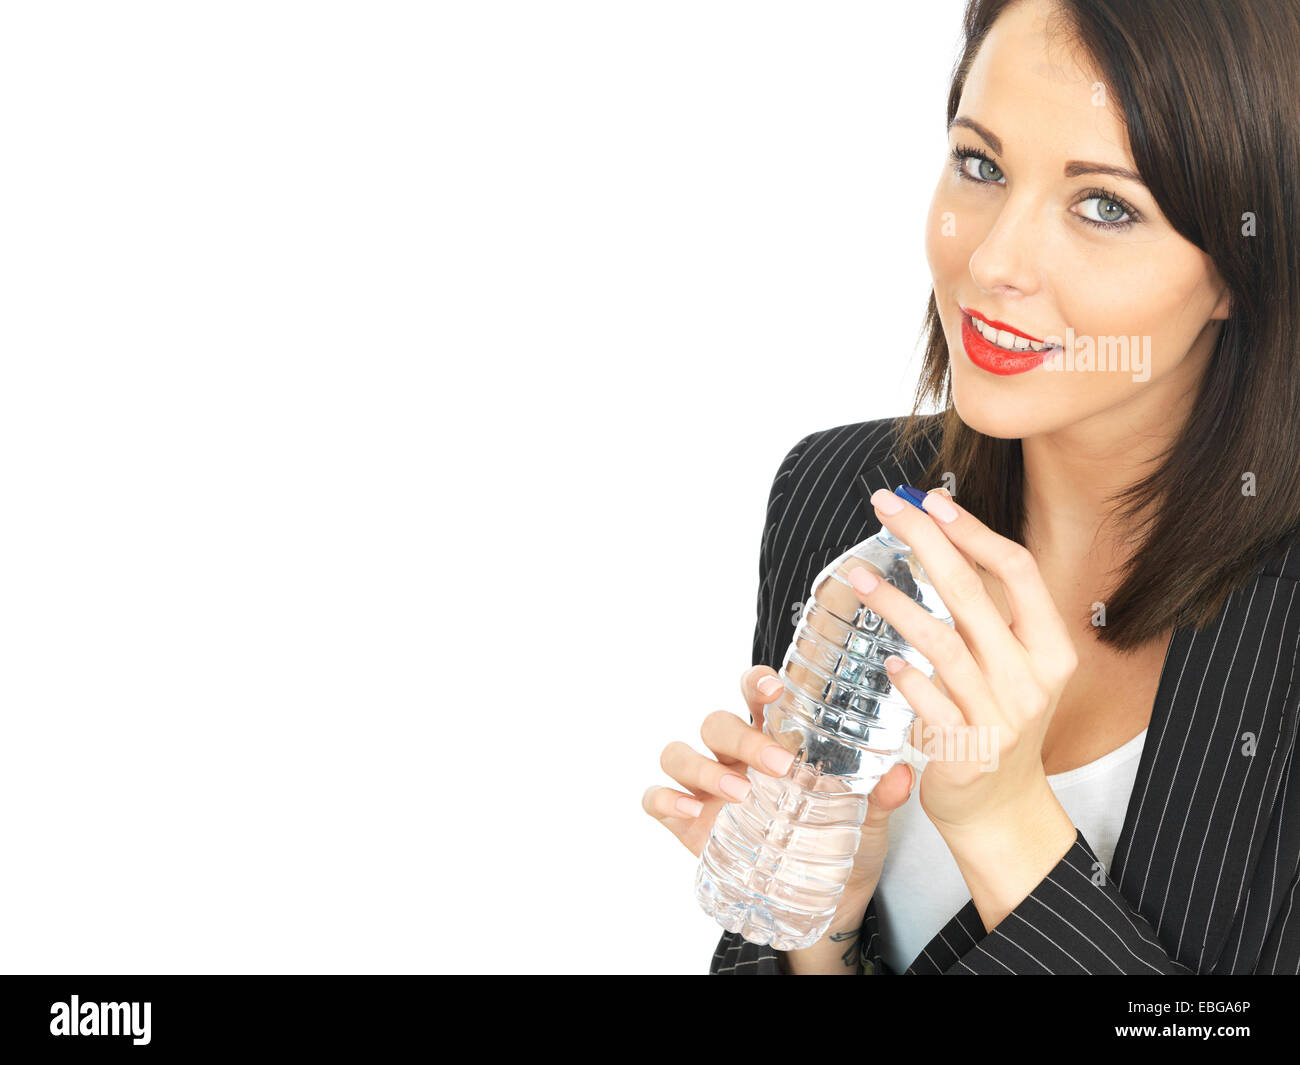 Attractive Business Woman Drinking a Bottle of Water - Stock Image